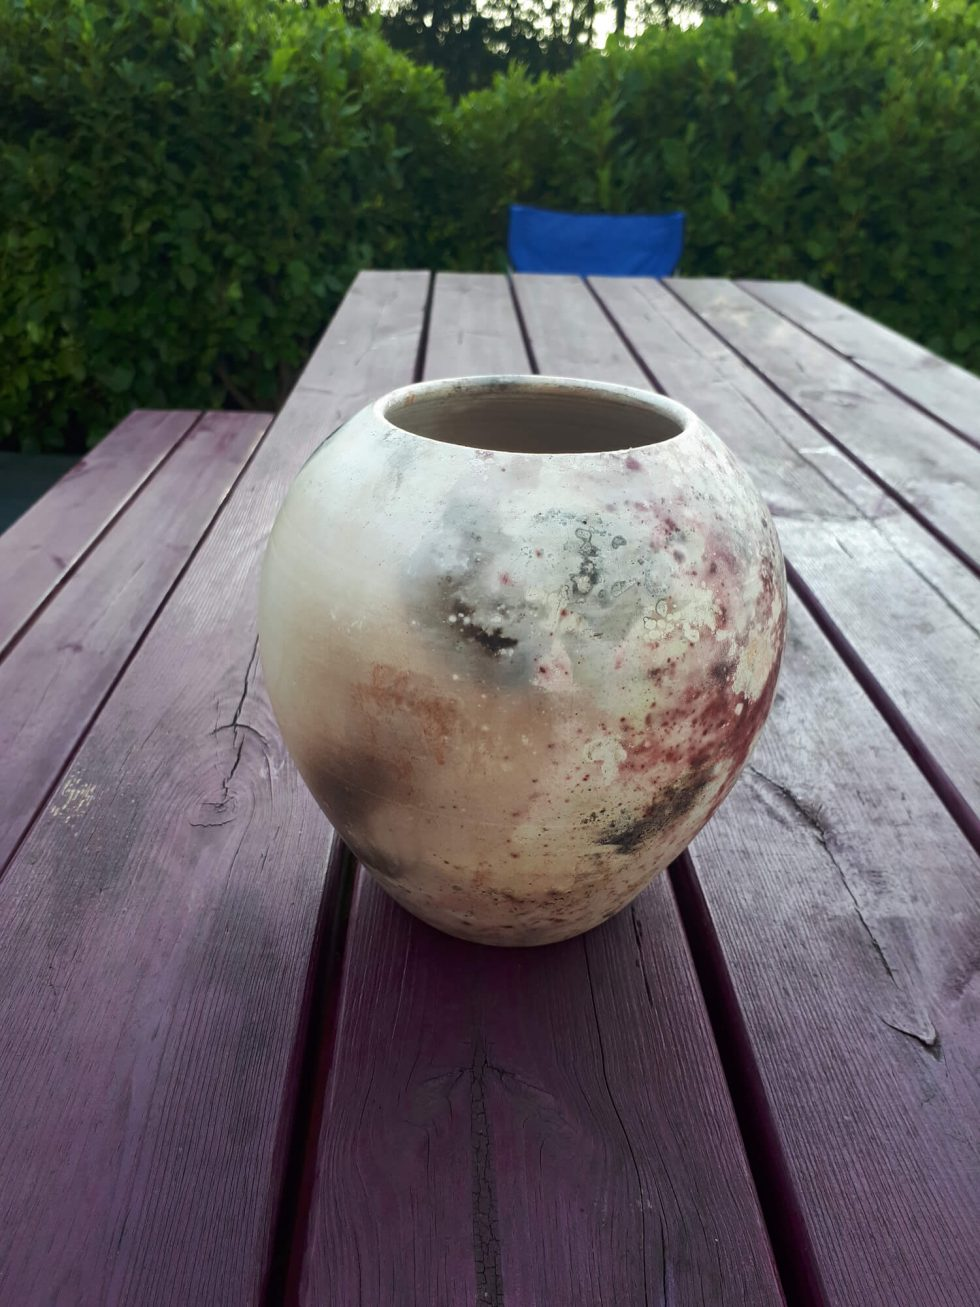 Fresh from the pit firing